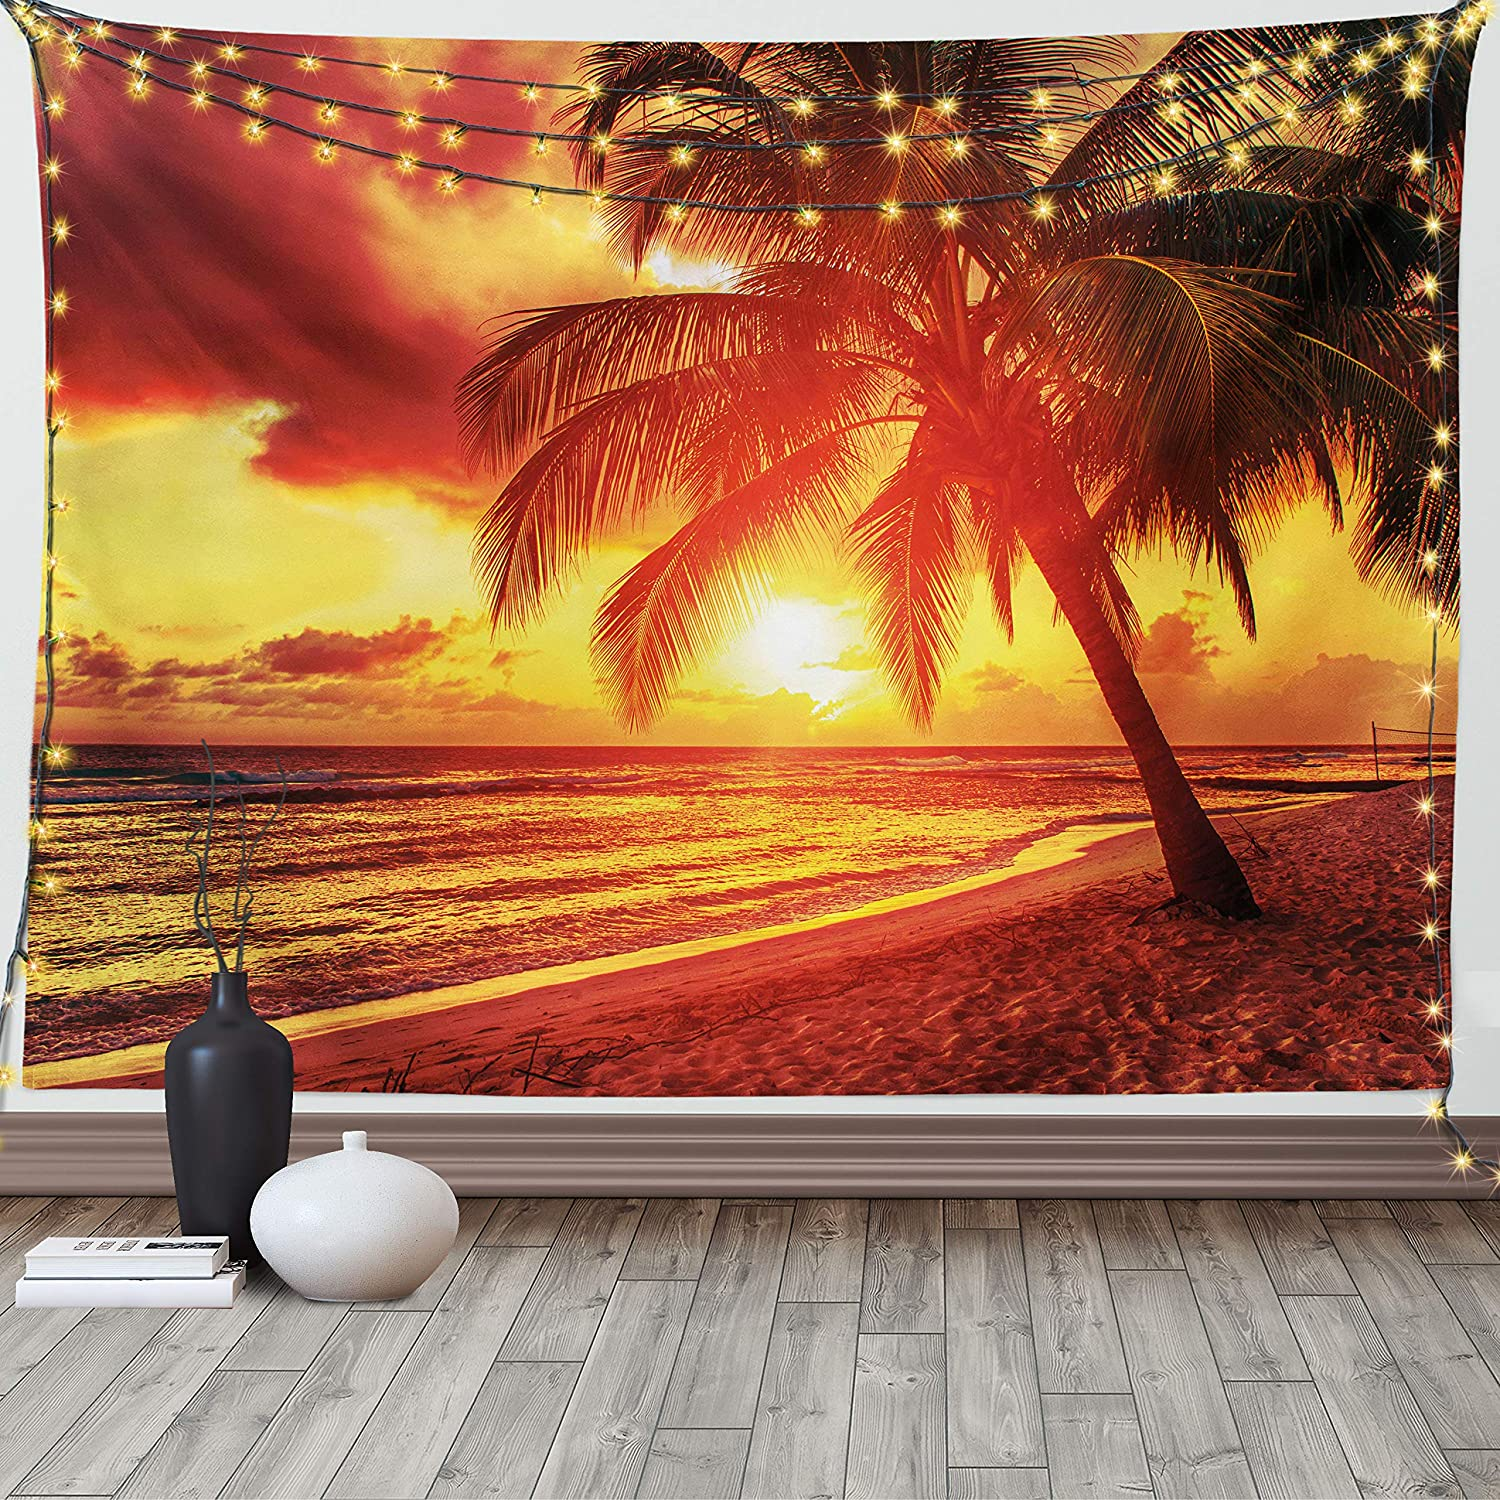 Lunarable Beach Tapestry King Size, Sunset at The Calm Beach with Palms Exotic Caribbean Island Barbados Scenic View, Wall Hanging Bedspread Bed Cover Wall Decor, 104